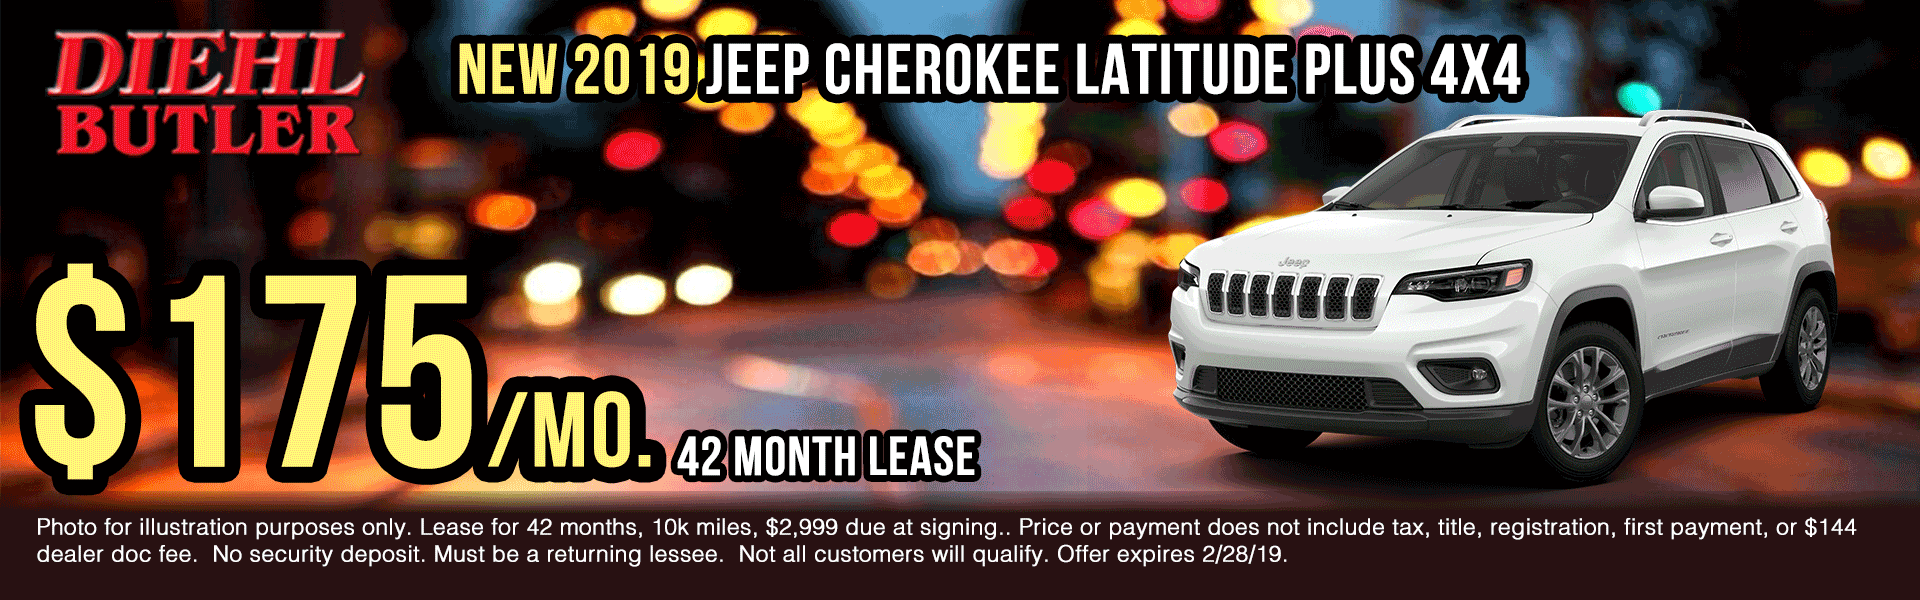 J191229-jeep-cherokee-latitude-plus New vehicle specials Diehl Automotive Diehl Butler Diehl of Butler specials truck specials ram specials jeep specials Chrysler specials dodge specials lease specials ram truck month presidents day sales event